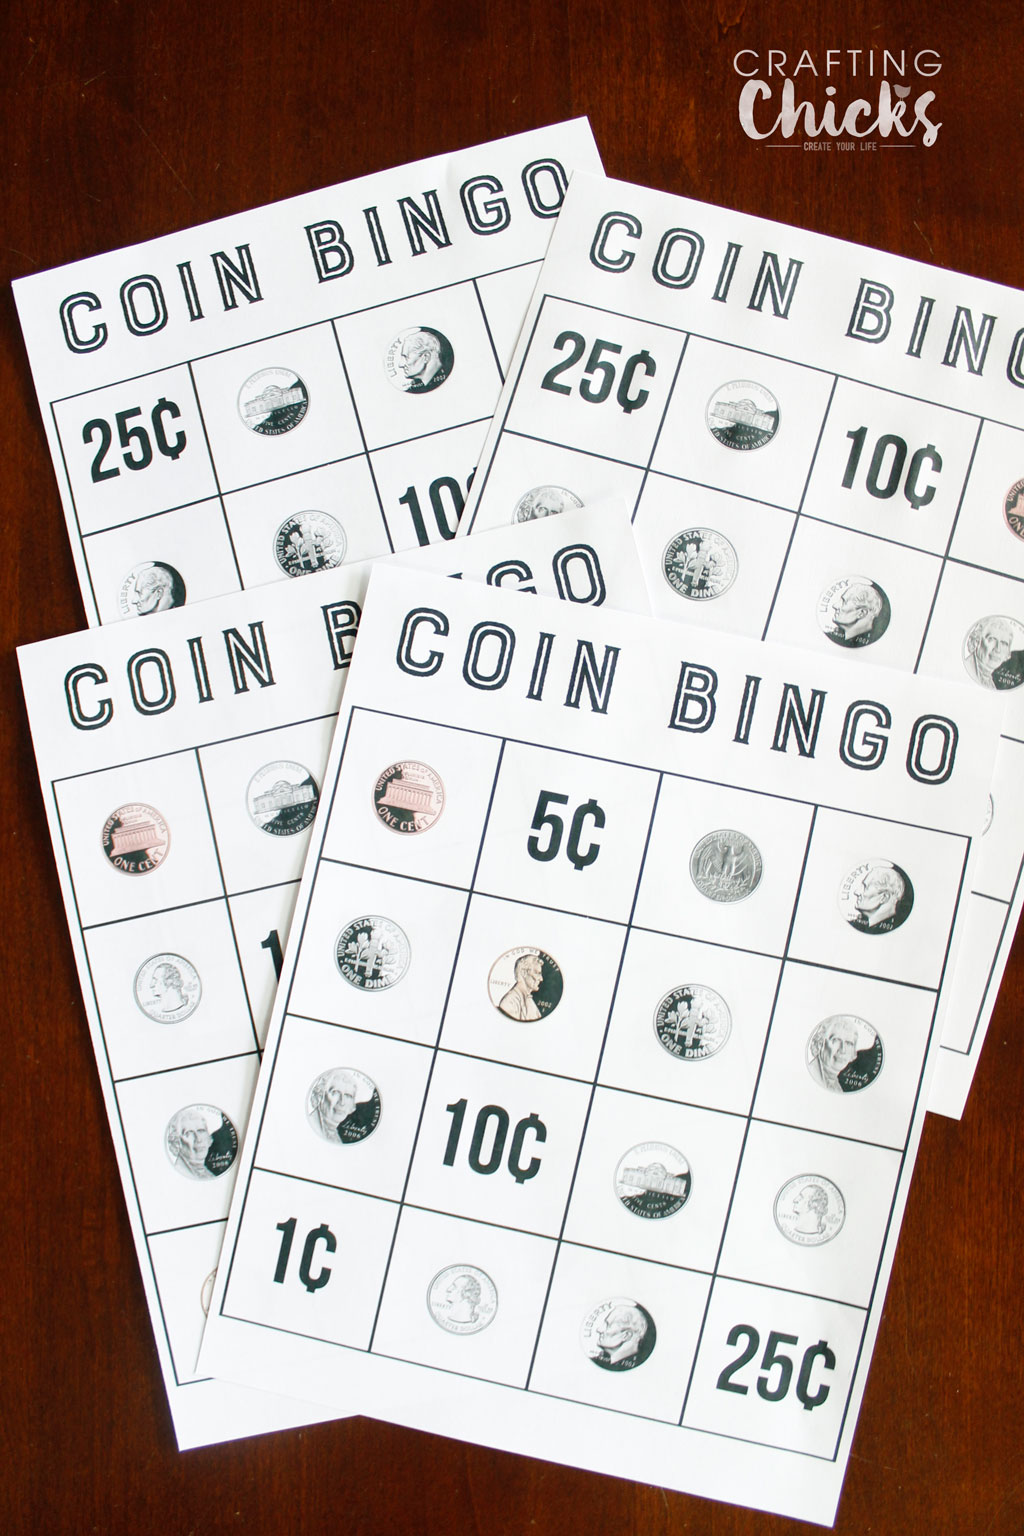 picture about Printable Money Games named Coin Bingo Cost-free Printable - The Producing Chicks